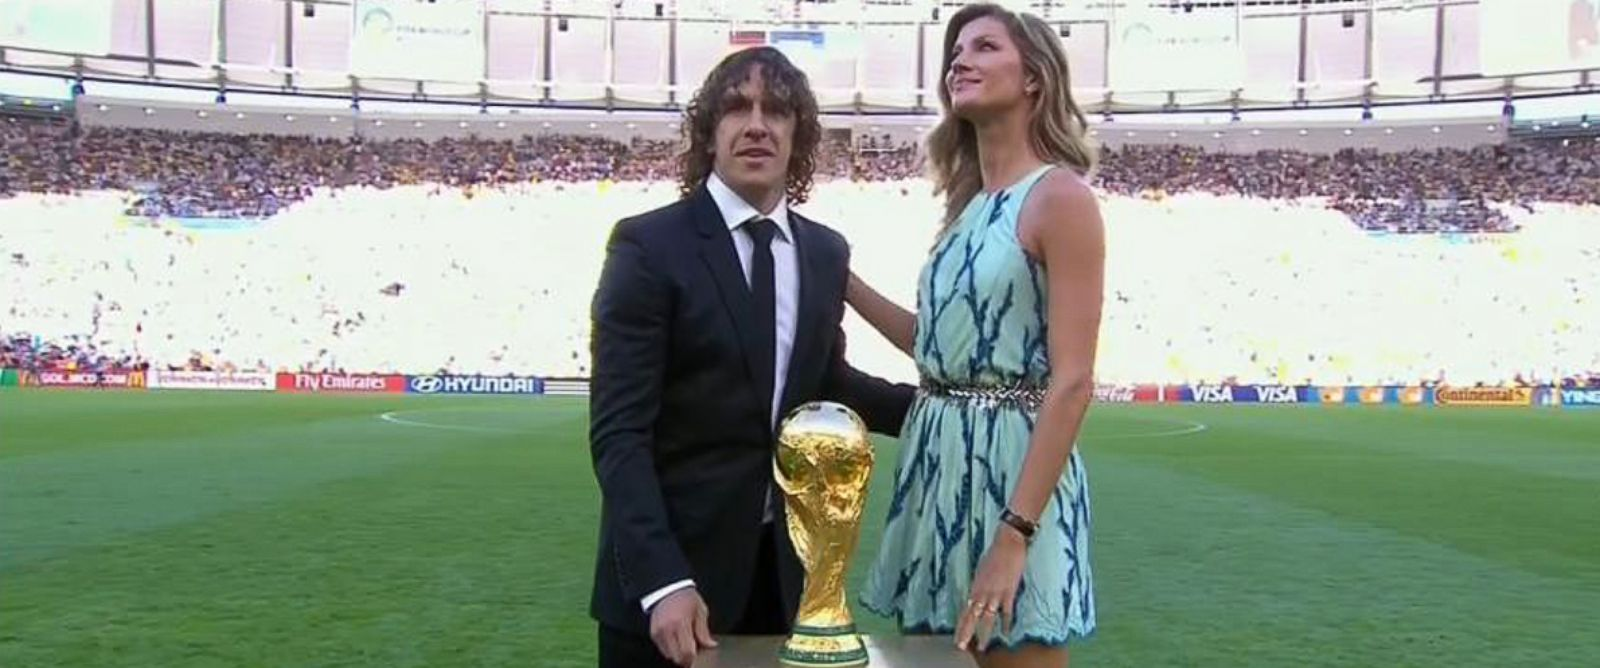 PHOTO: Former Spanish team captain Carles Puyol of Spain and model Gisele Bundchen pose with the World Cup trophy prior to the World Cup final soccer match between Germany and Argentina at the Maracana Stadium in Rio de Janeiro, July 13, 2014.